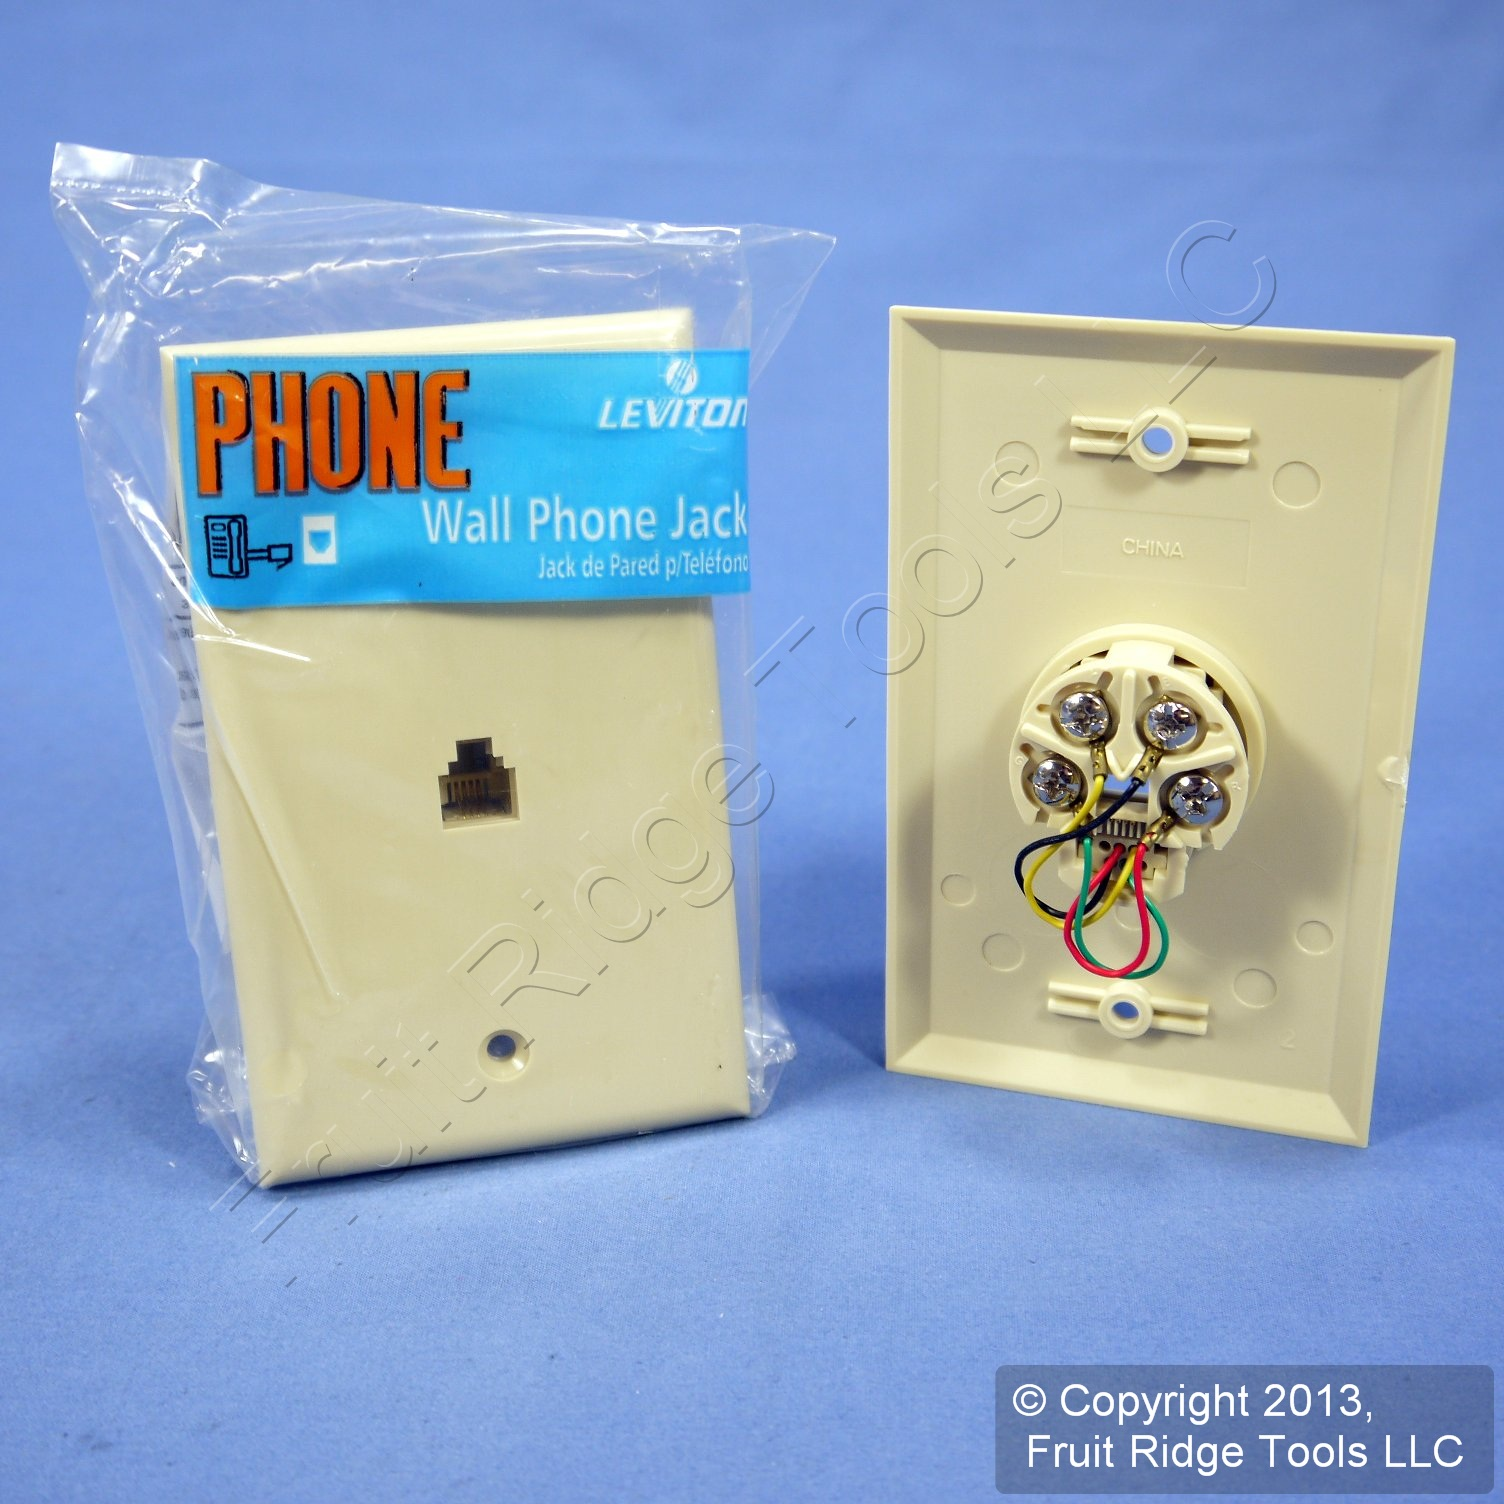 5 Leviton Ivory 4 Wire Phone Jack Wallplates Rj11 Modular Telephone Wiring Diagram Picture 3 Of 6